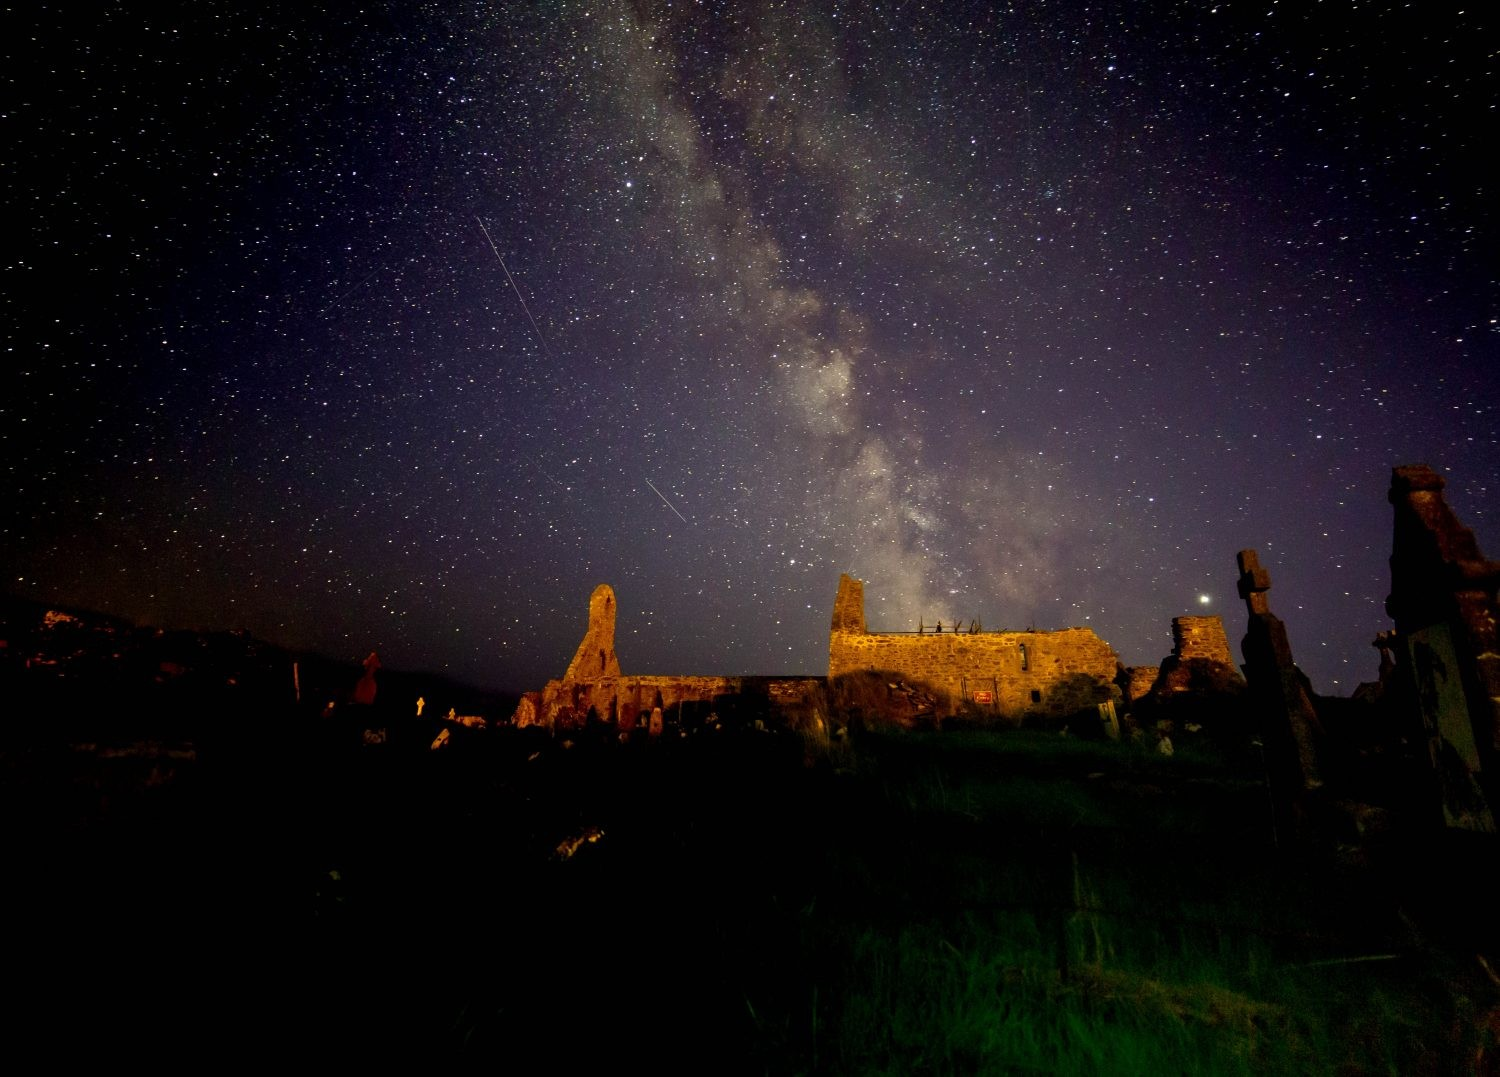 A view of the Milky Way over Skellig Star Party. Credit: Roy Stewart